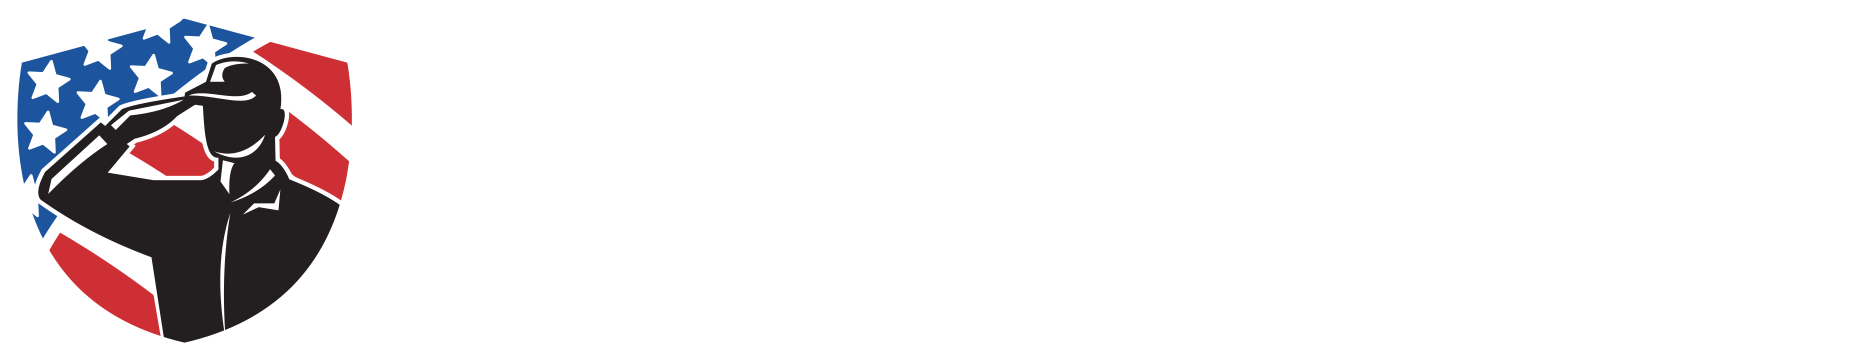 Engines-USA